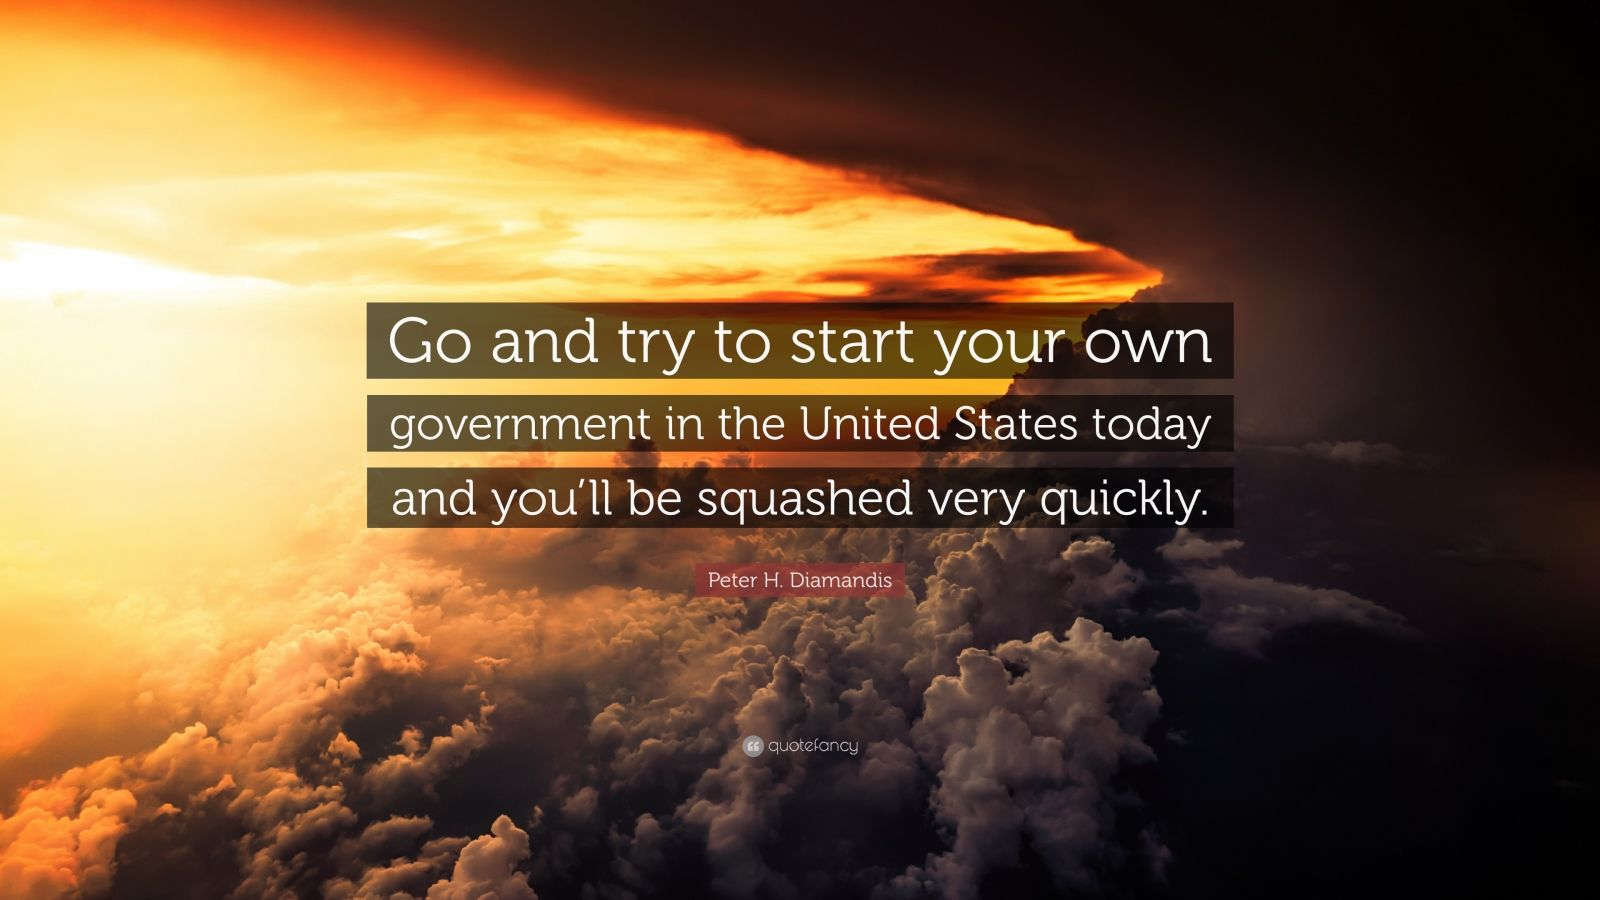 """Peter H. Diamandis Quote: """"Go and try to start your own government in the United States today and you'll be squashed very quickly."""""""